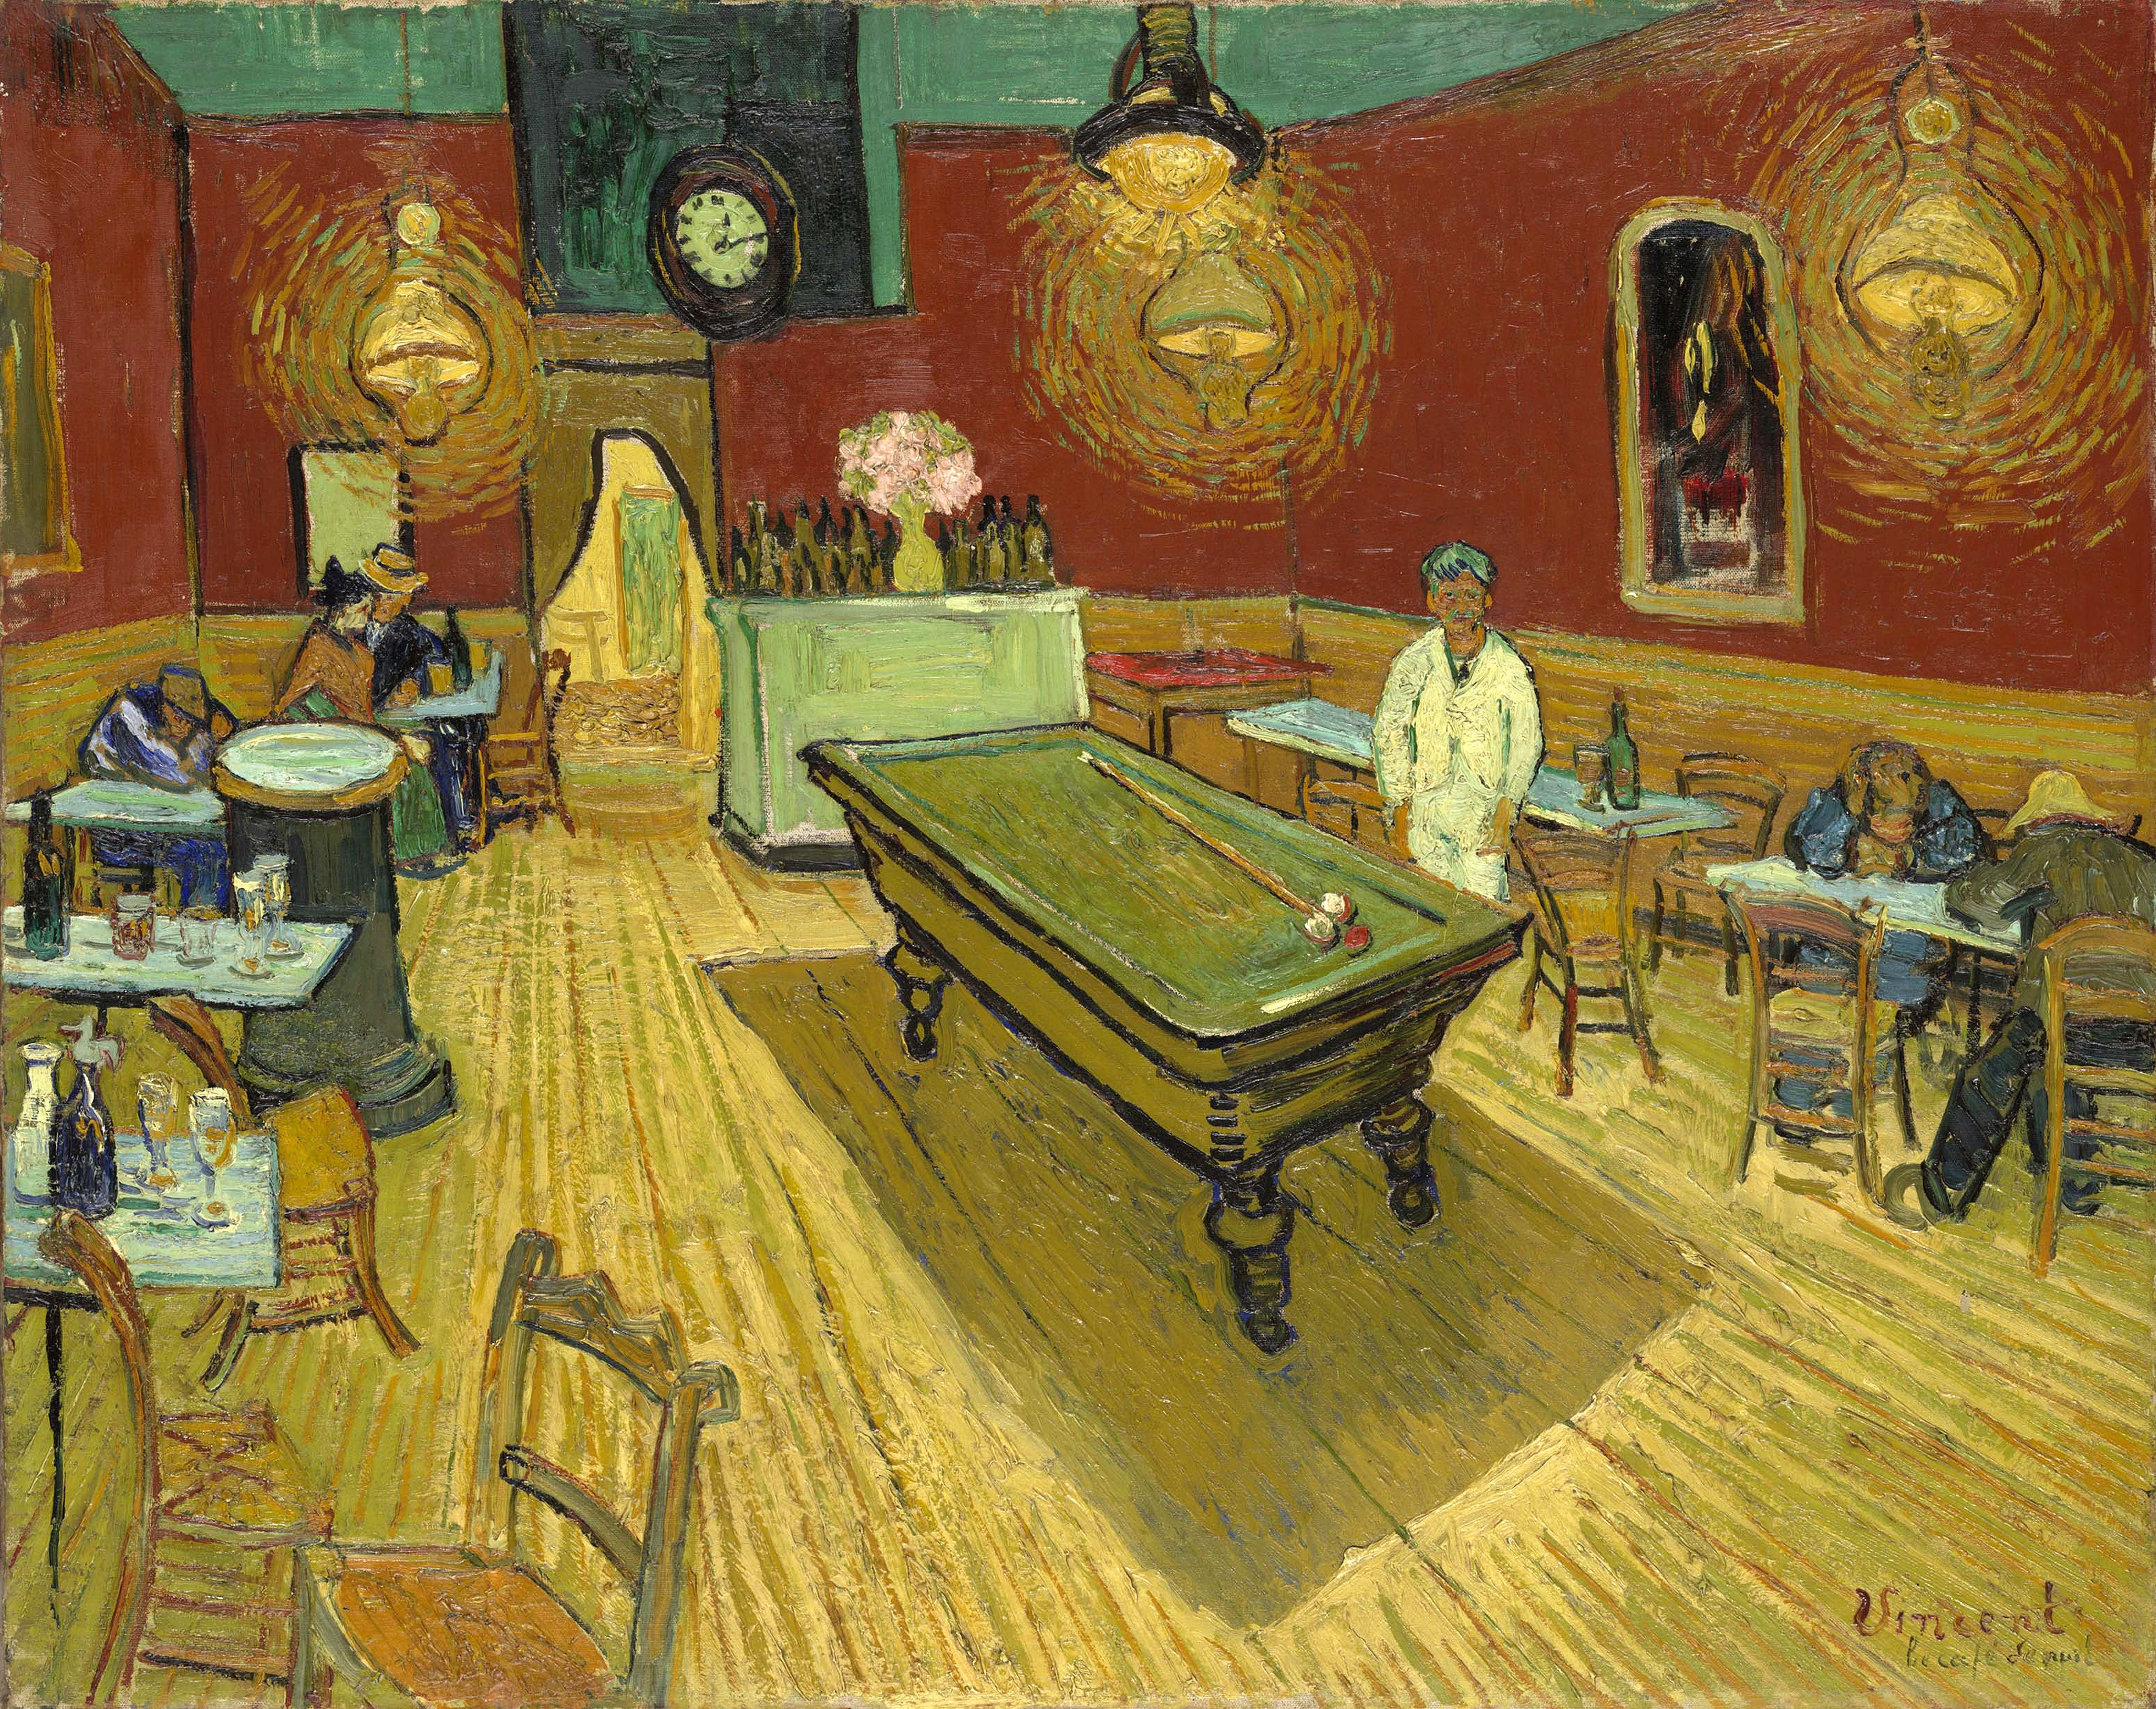 Room with red walls, yellow floor, hanging lights, clock, bar, and pool table.